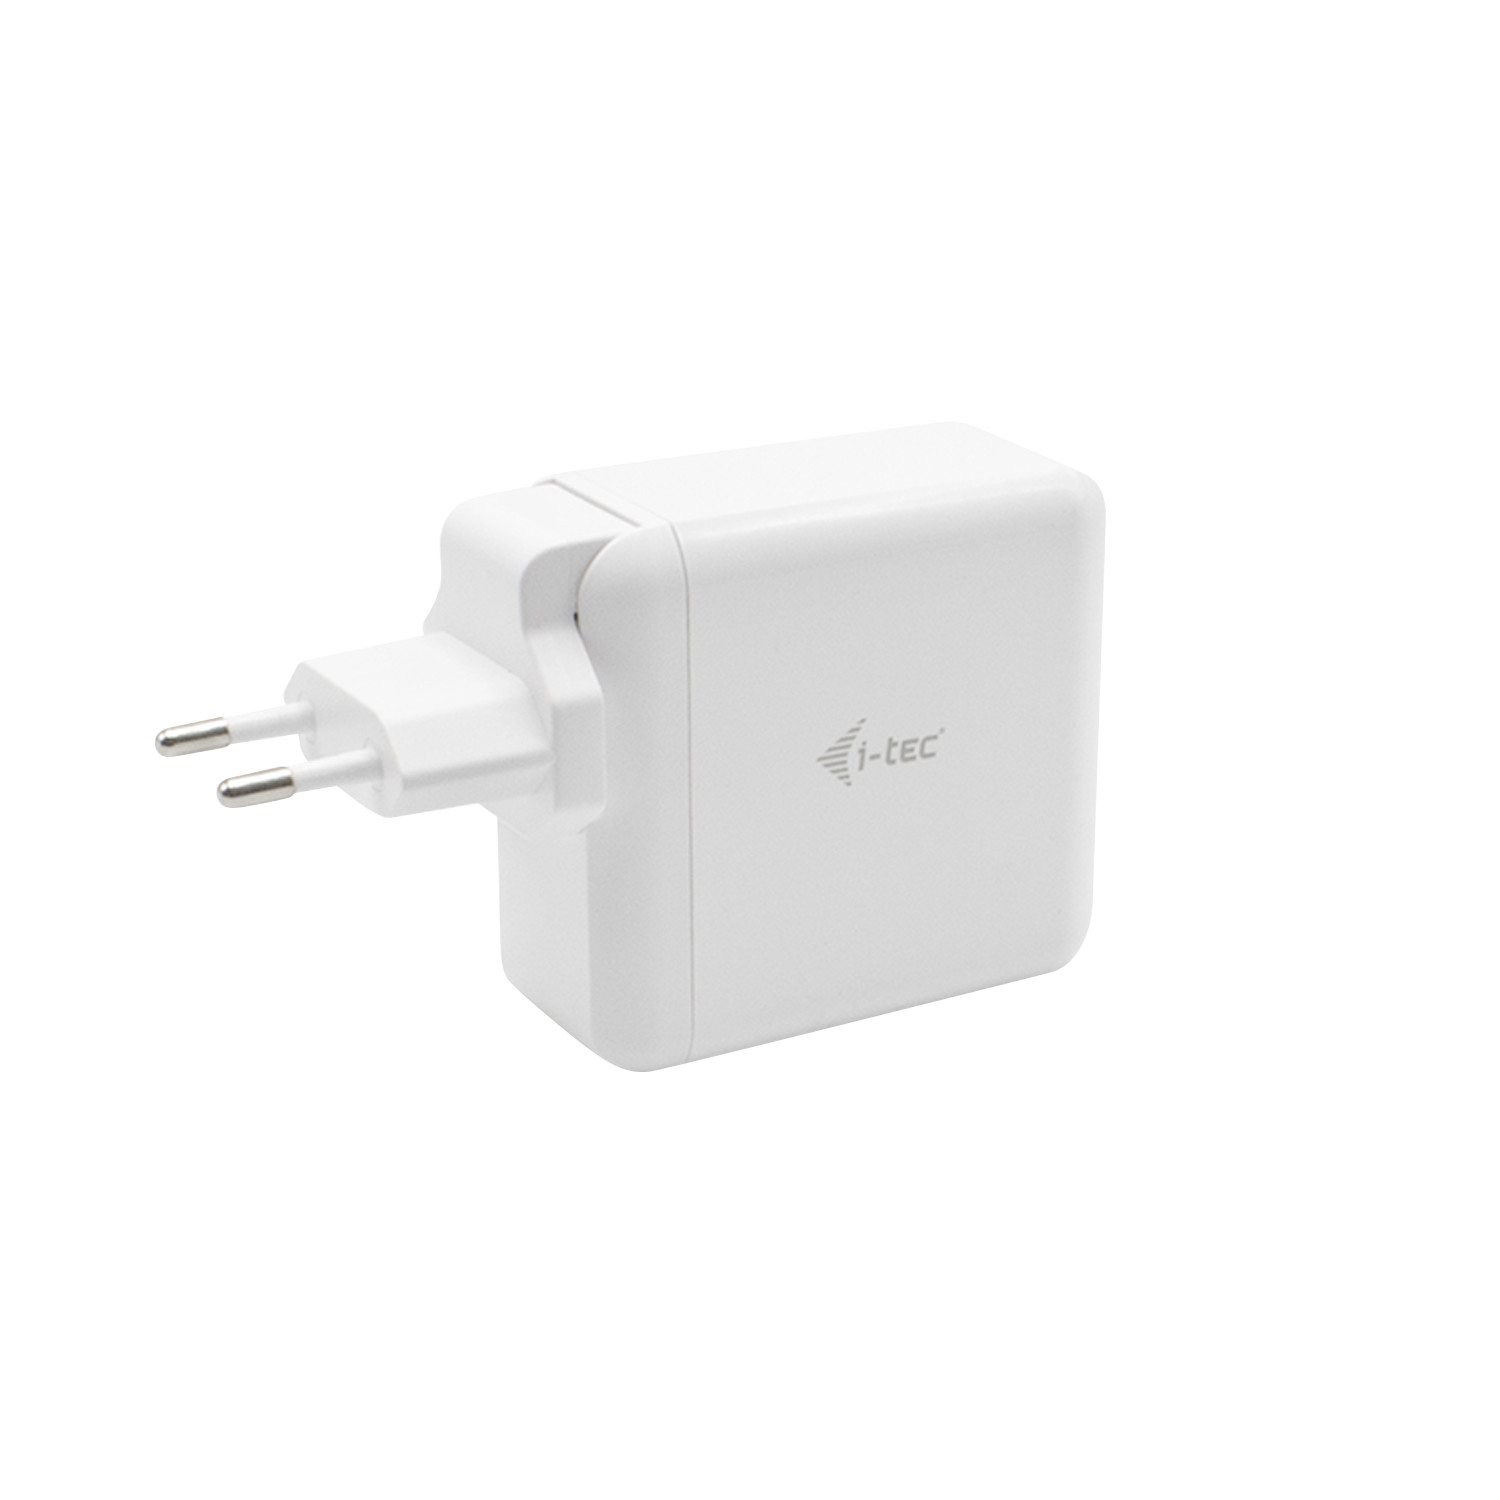 charger-c60wt-4